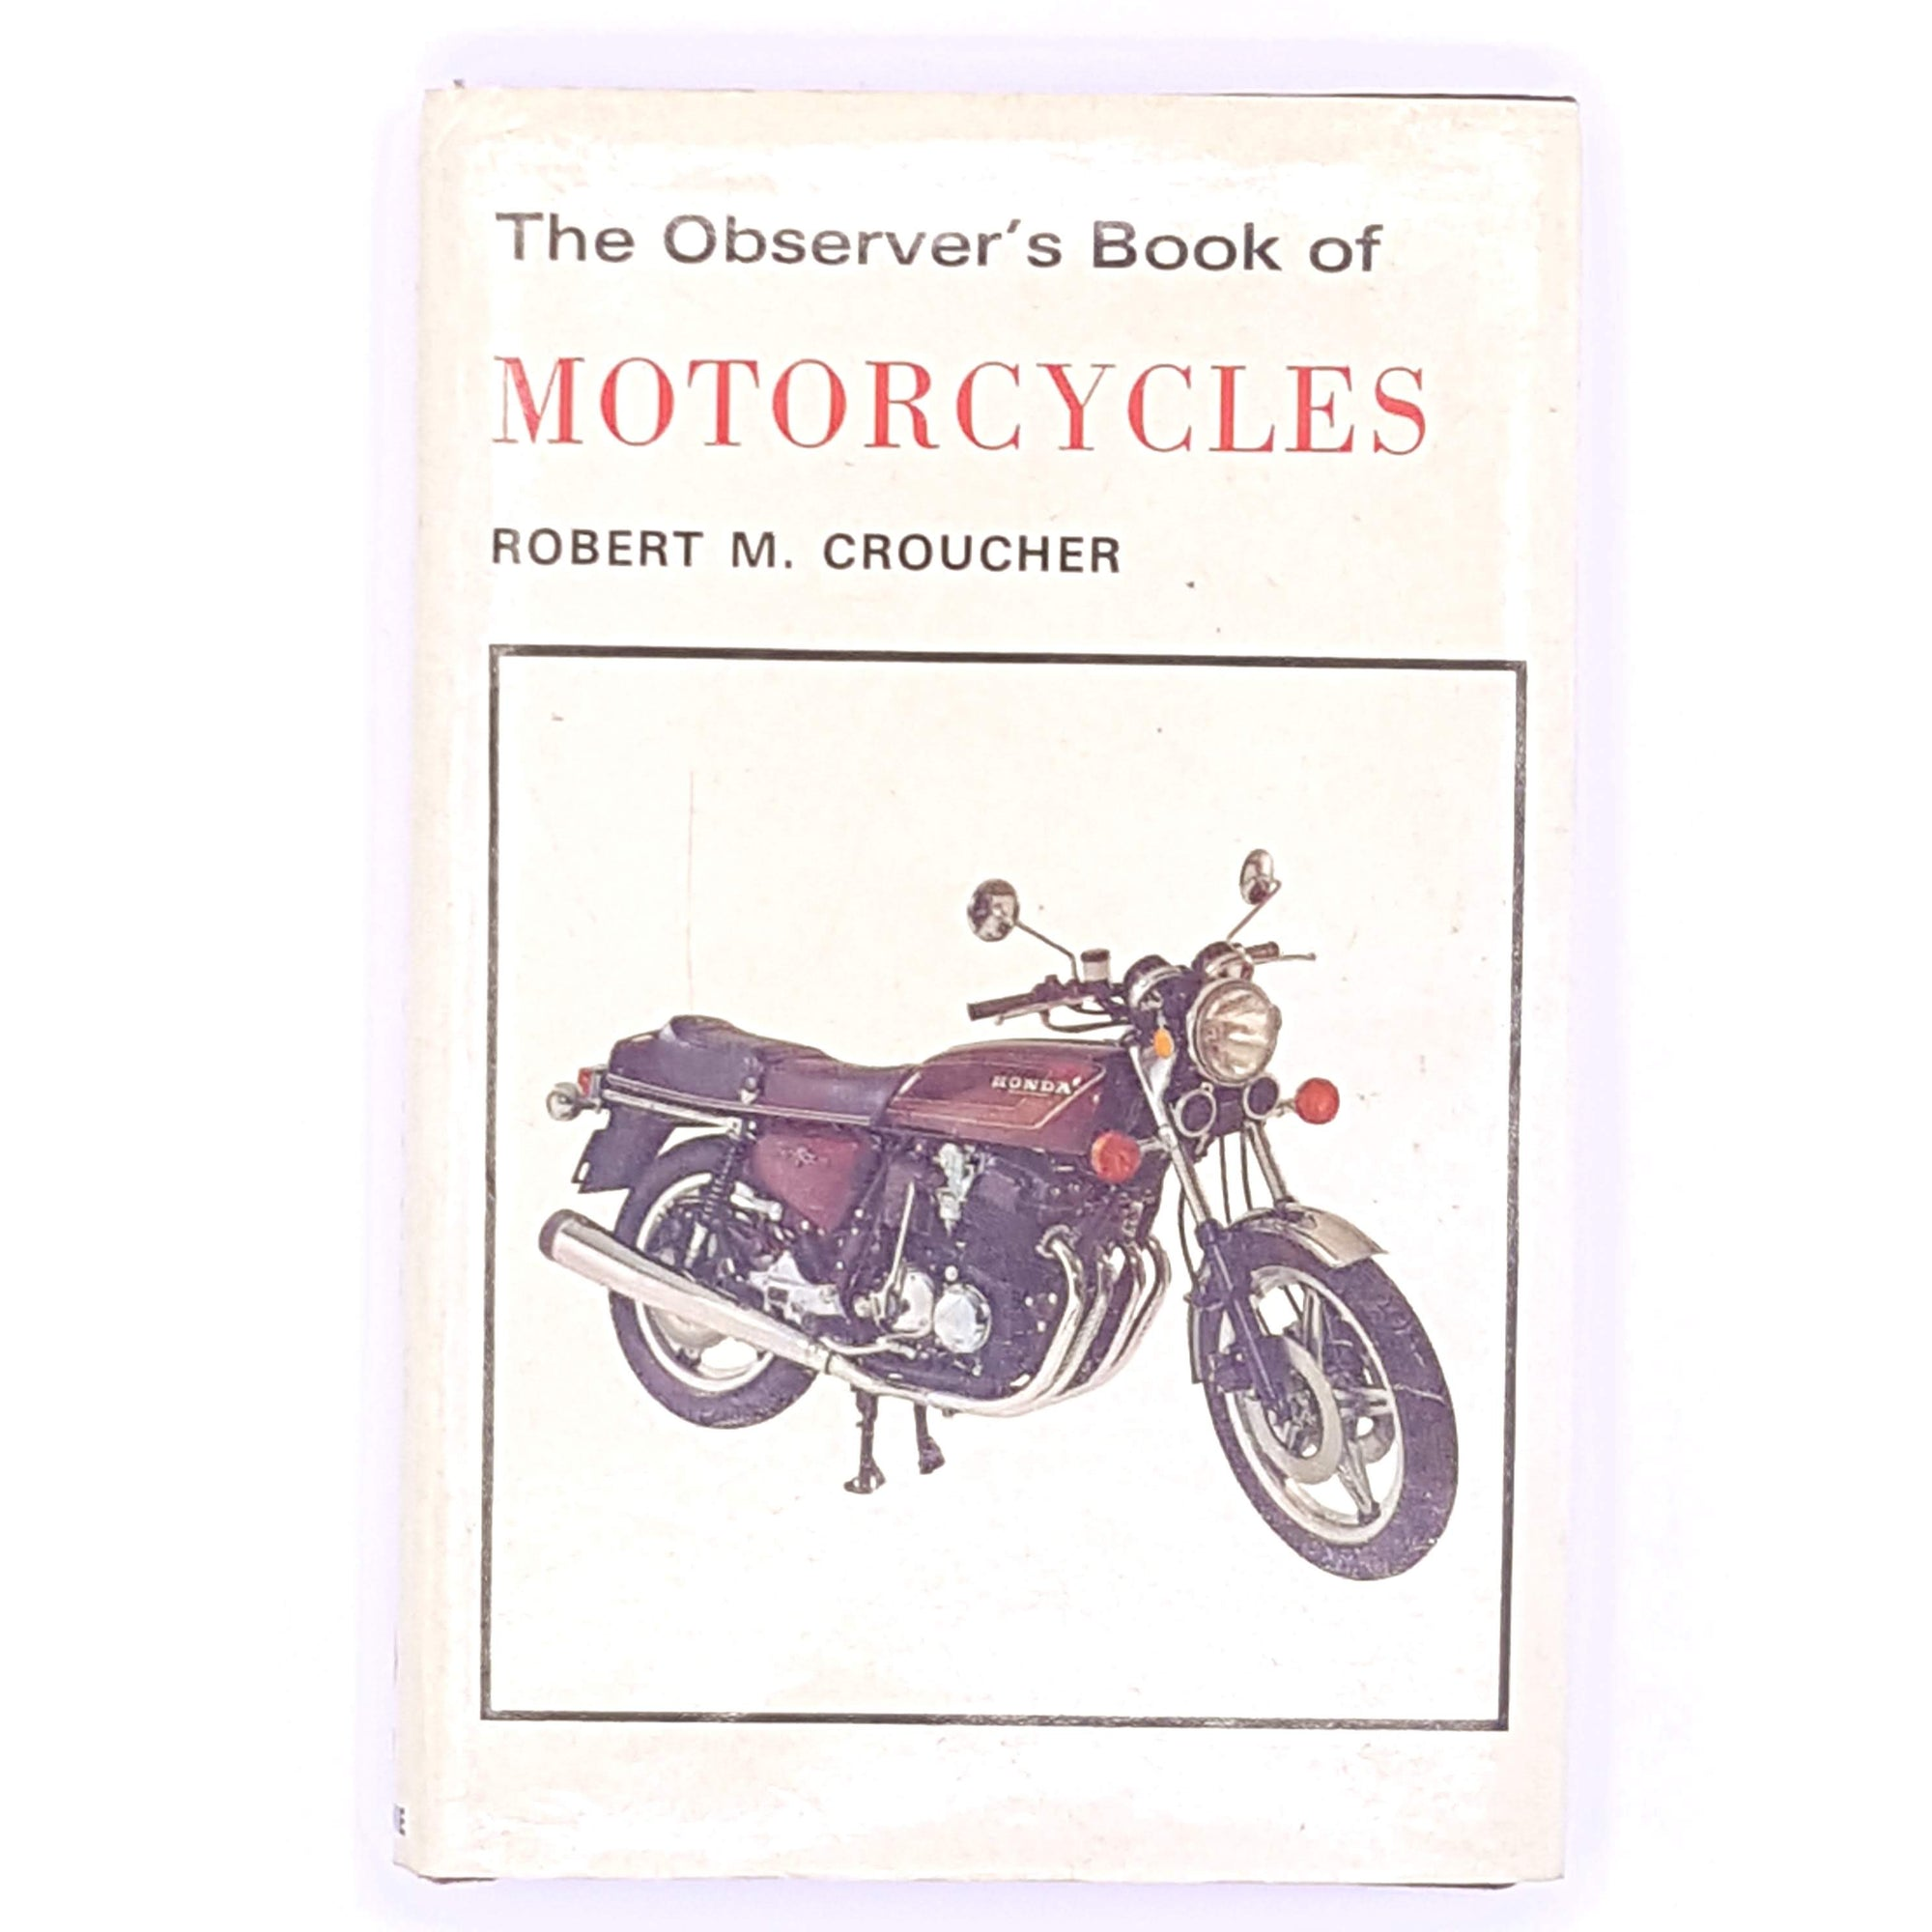 observer-1977-patterned-decorative-pocket-classic-motorcycles-motorbikes-croucher-antique-old-vintage-thrift-bikes-country-house-library-books-